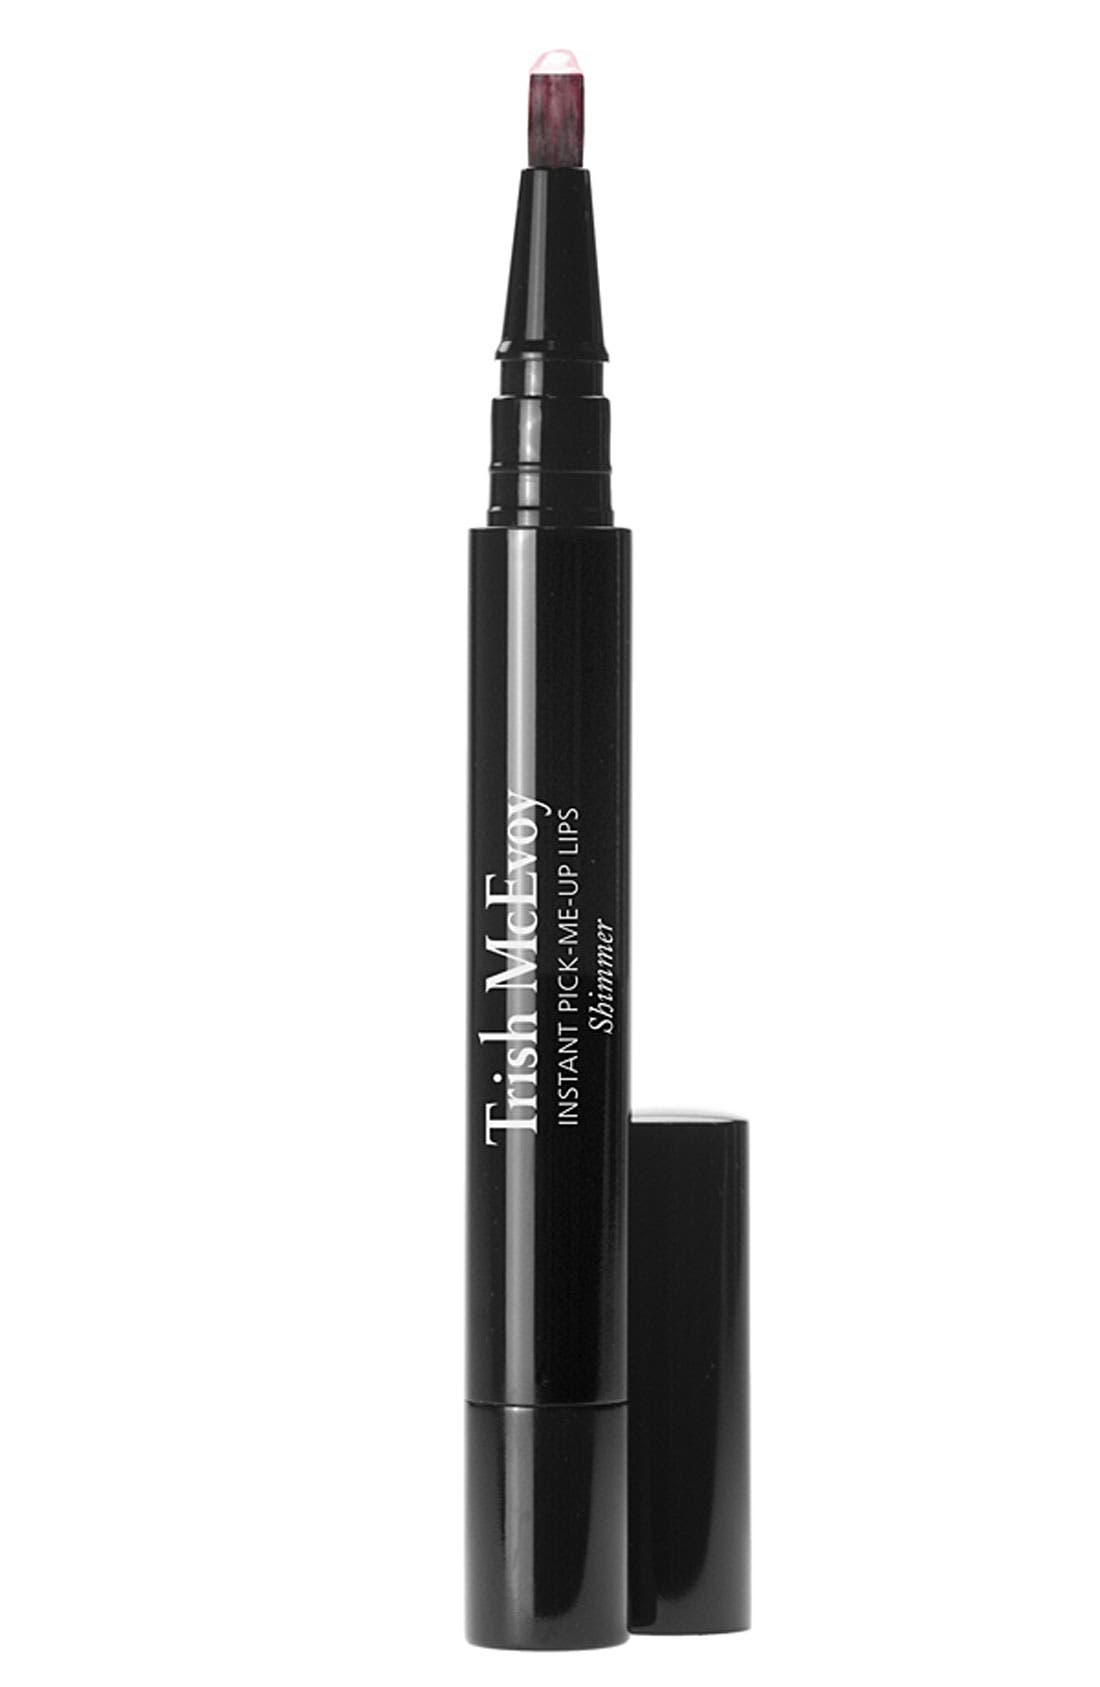 Trish McEvoy 'Instant Pick-Me-Up' Lip Shimmer